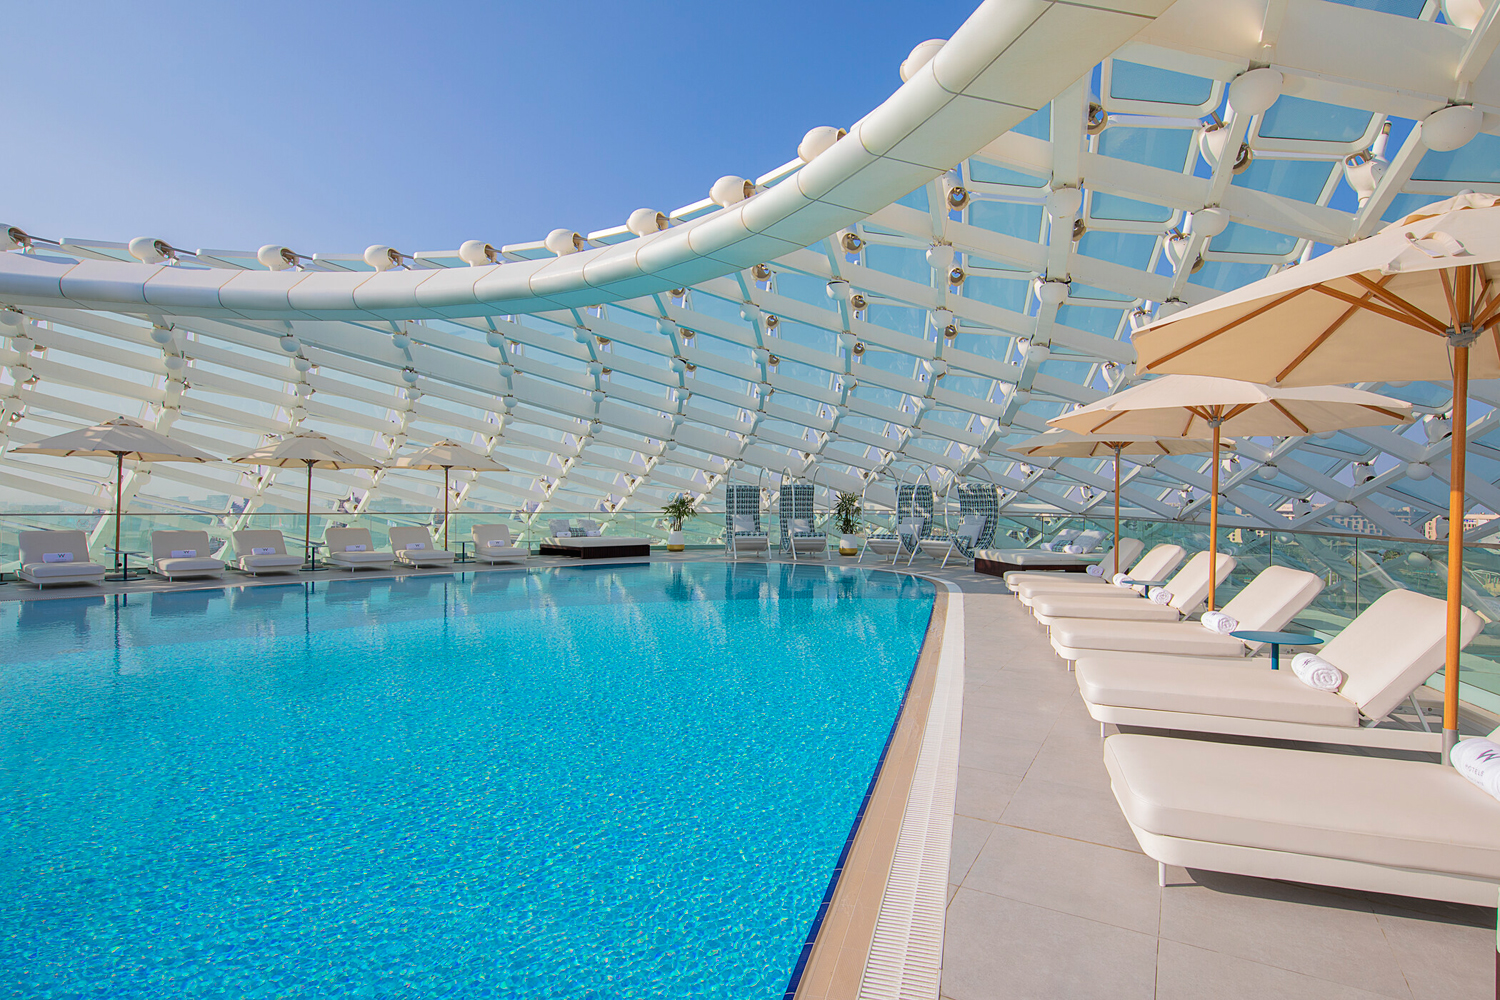 New Pool Pass At W Abu Dhabi Yas Island Gives You The Full Cost Back In Credit Things To Do Summer Offers Time Out Abu Dhabi